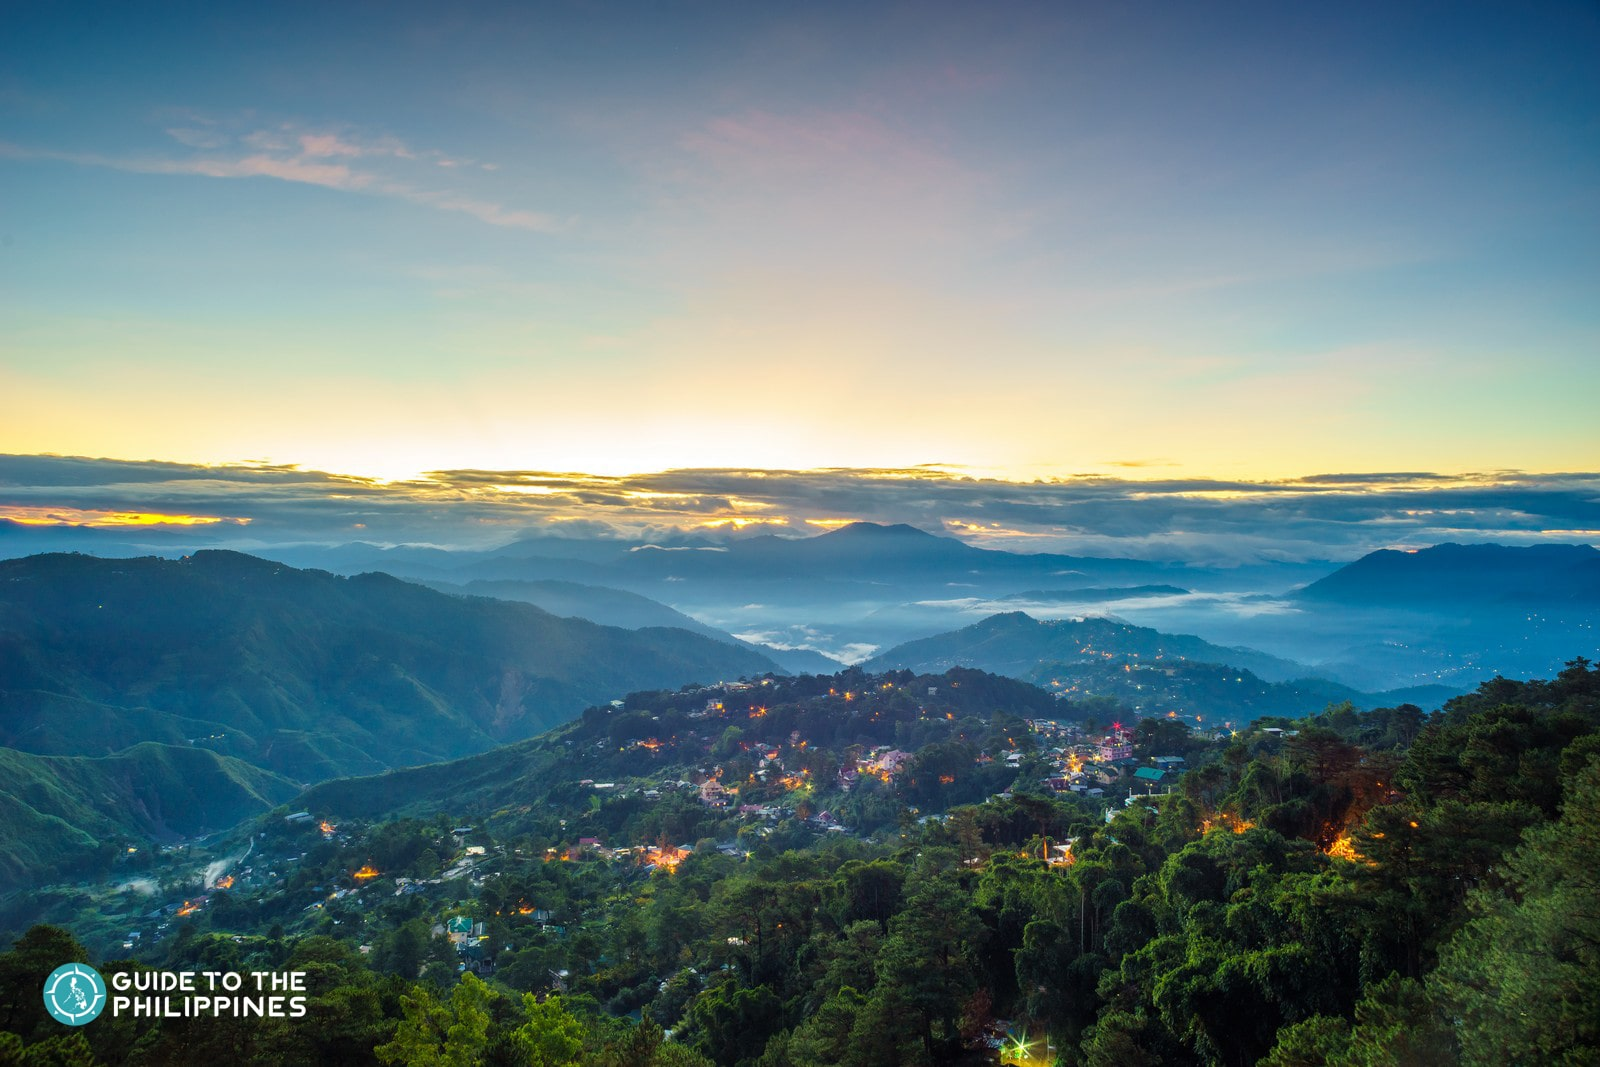 Sunset in Mines View Park in Baguio City